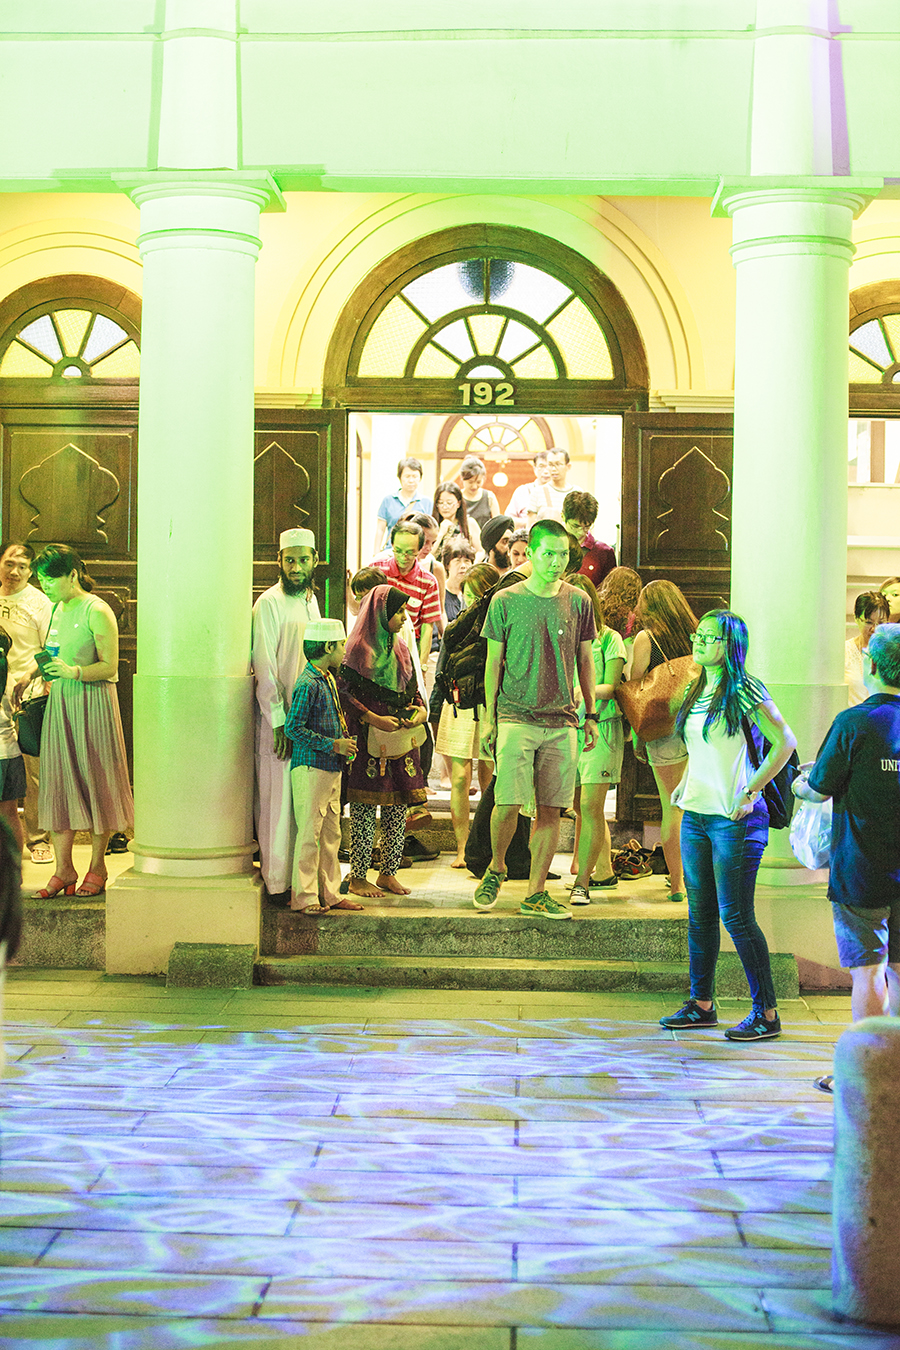 Light-up installation simulating the sea outside a mosque on Telok Ayer street, Singapore.